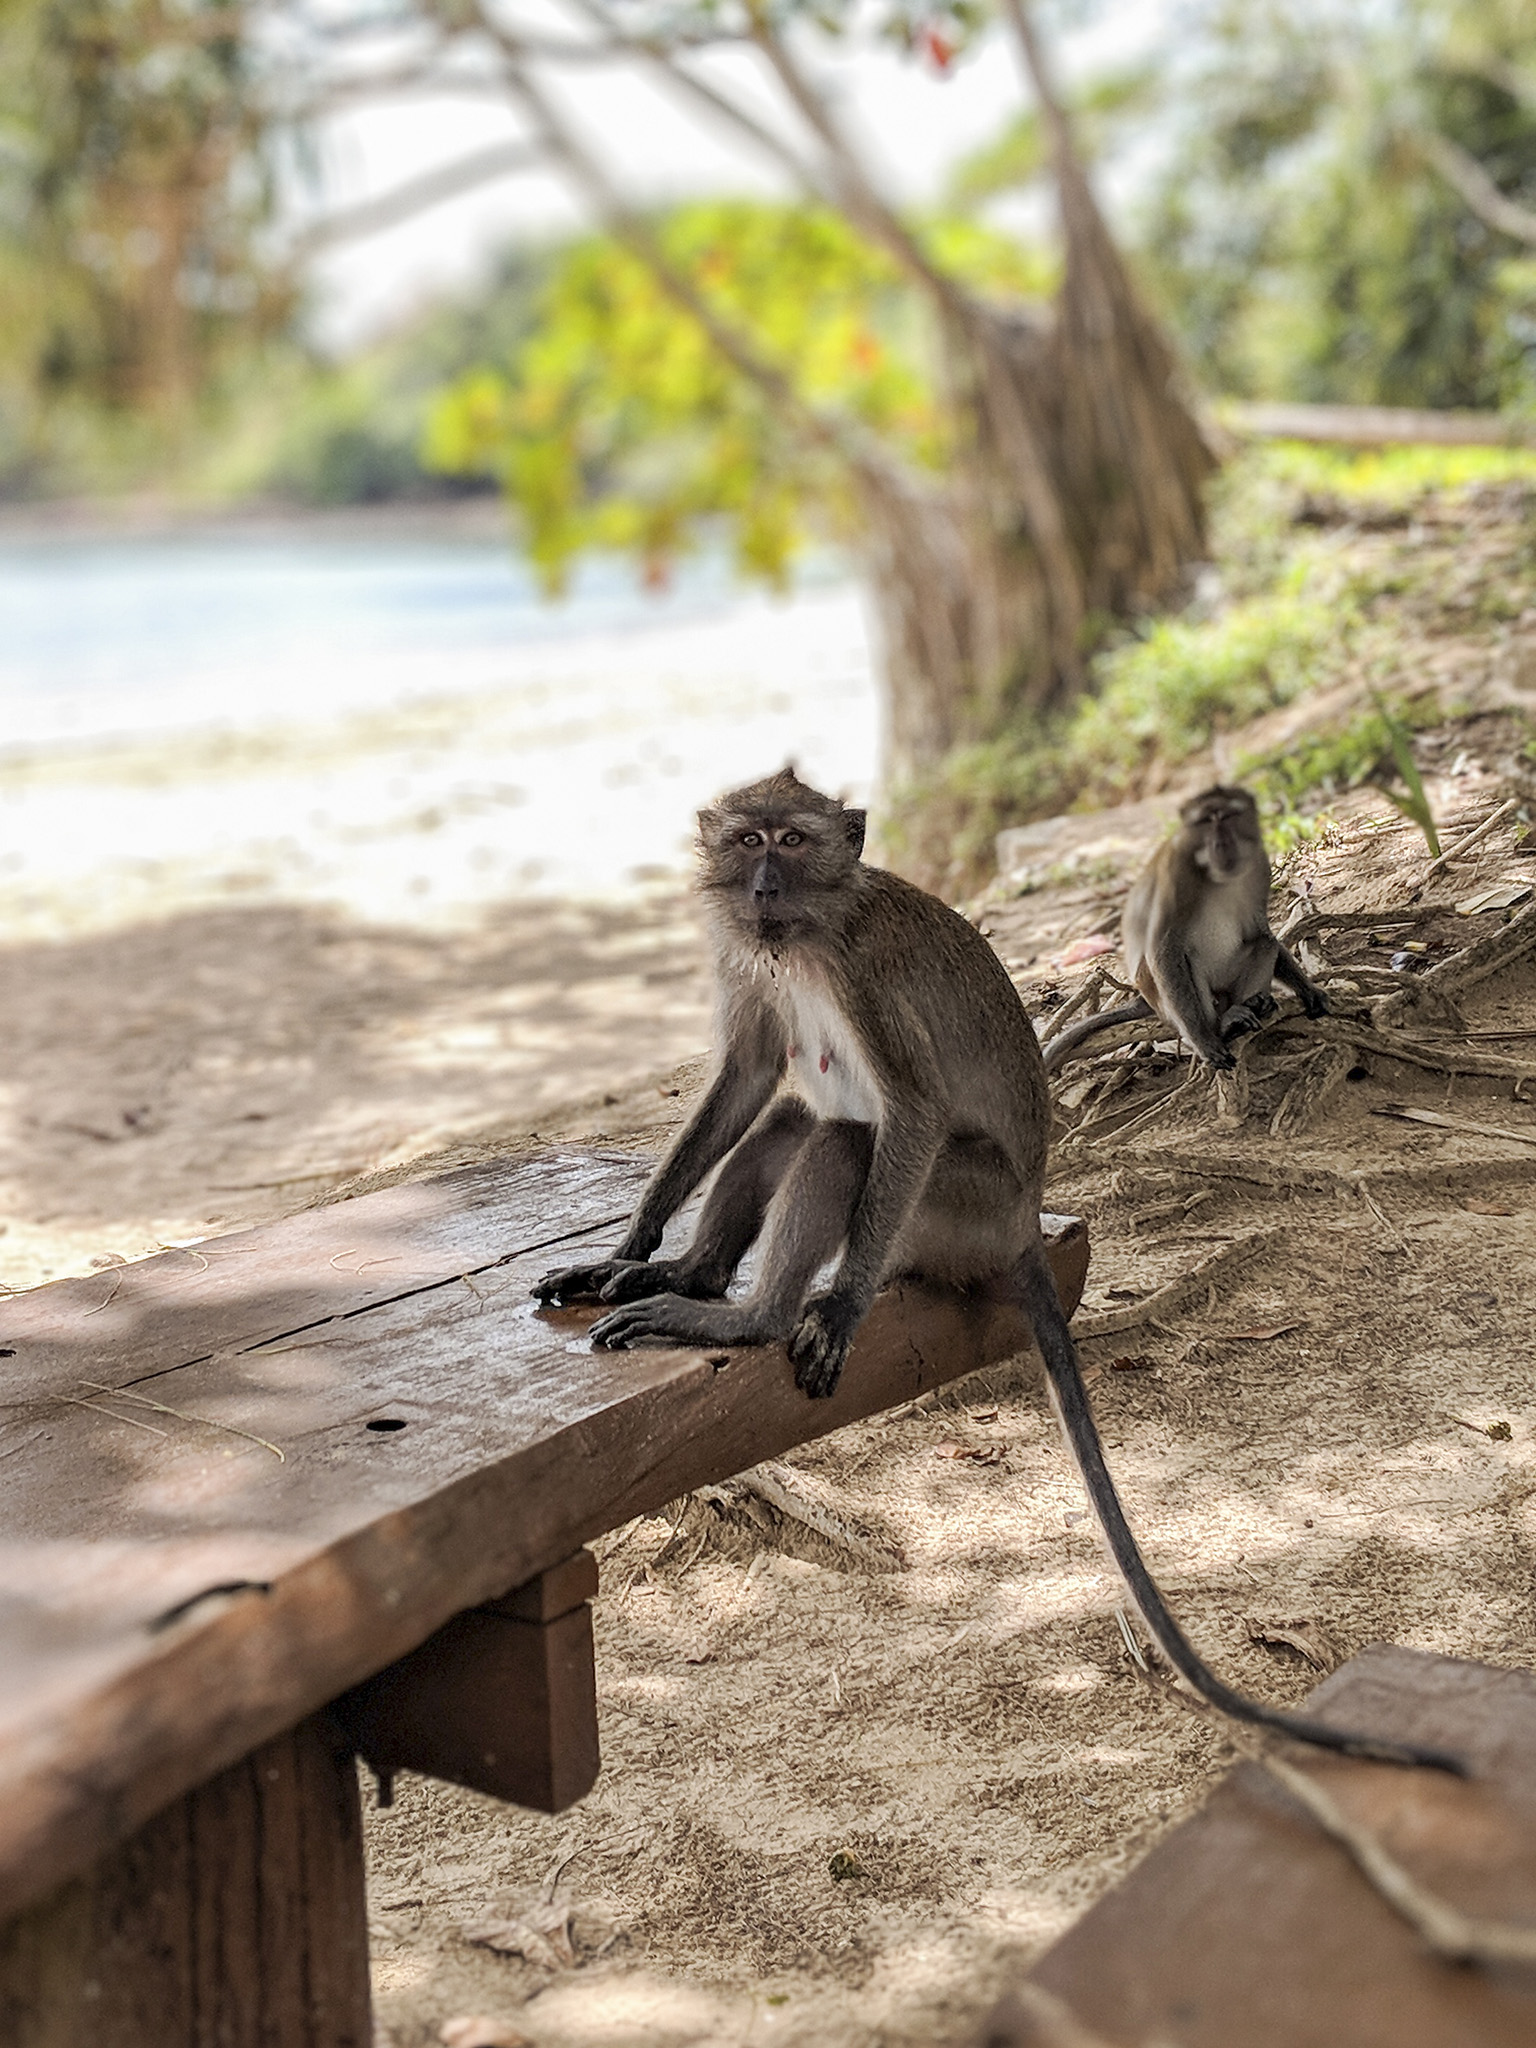 mischievous monkeys looking for a snack